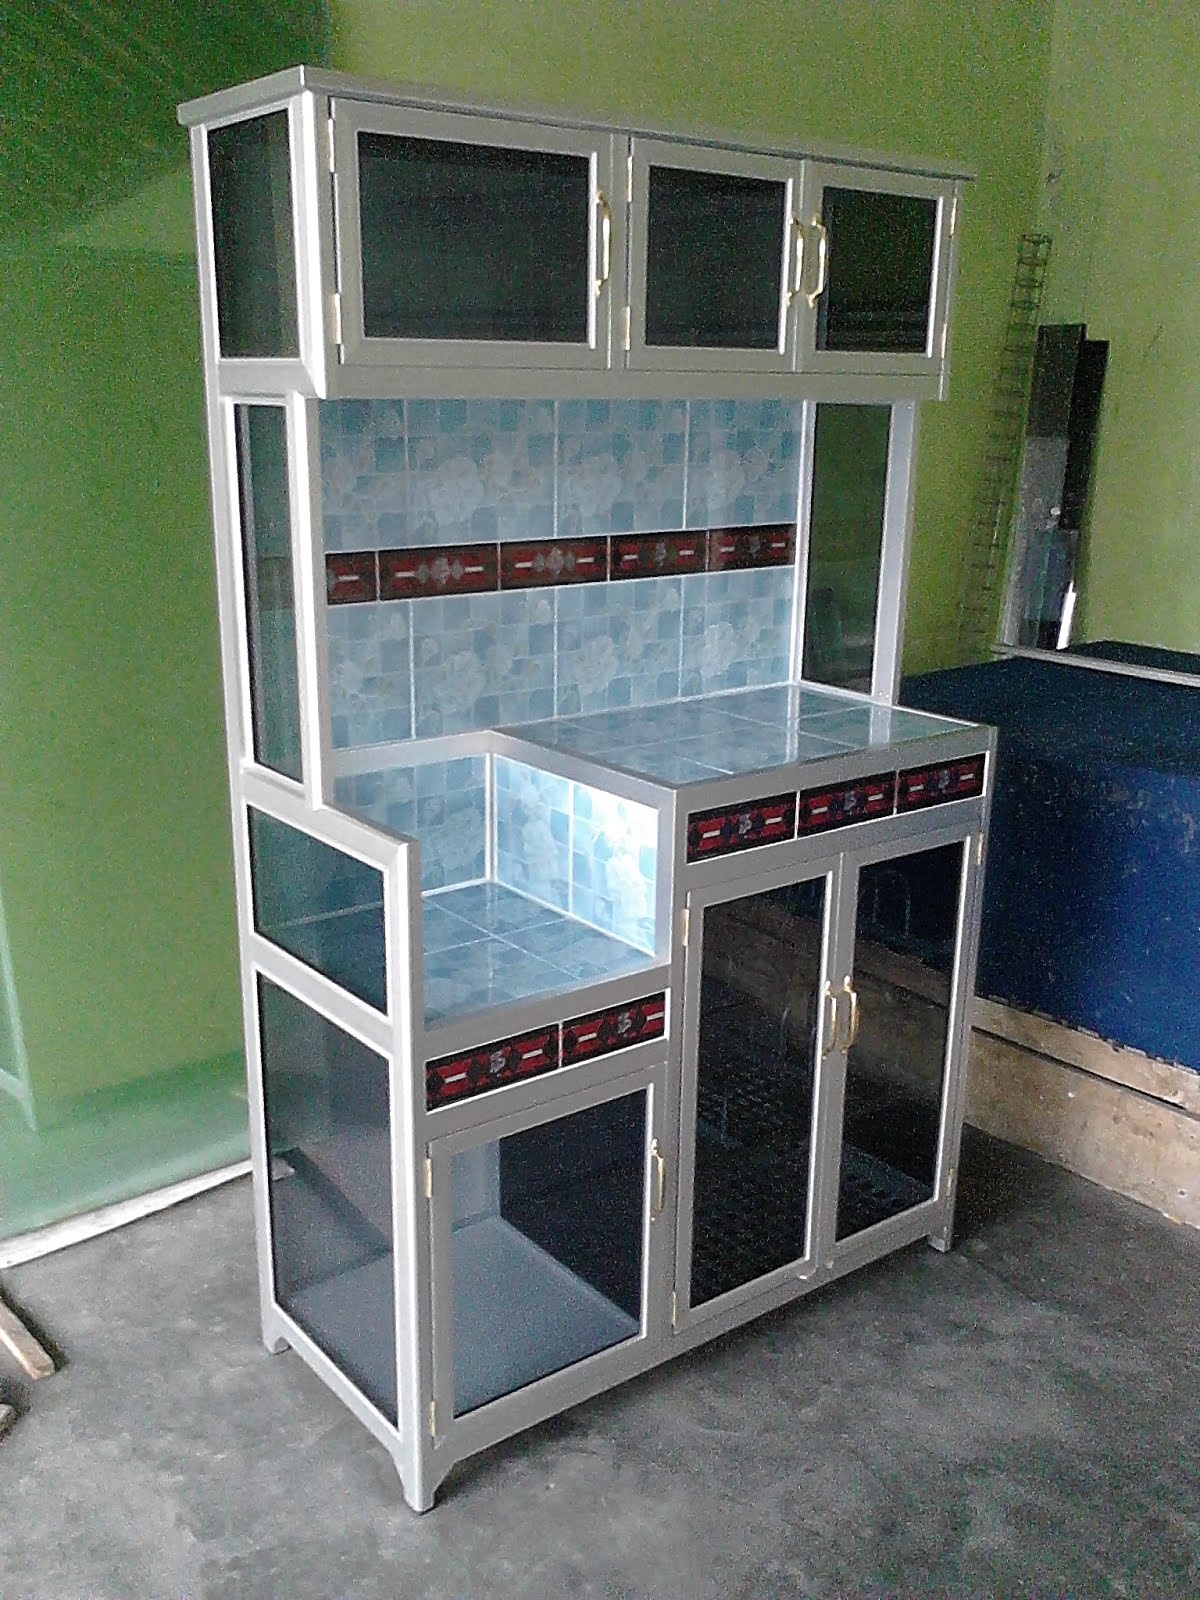 Harga kitchen set aluminium murah jual for Harga kitchen set aluminium minimalis